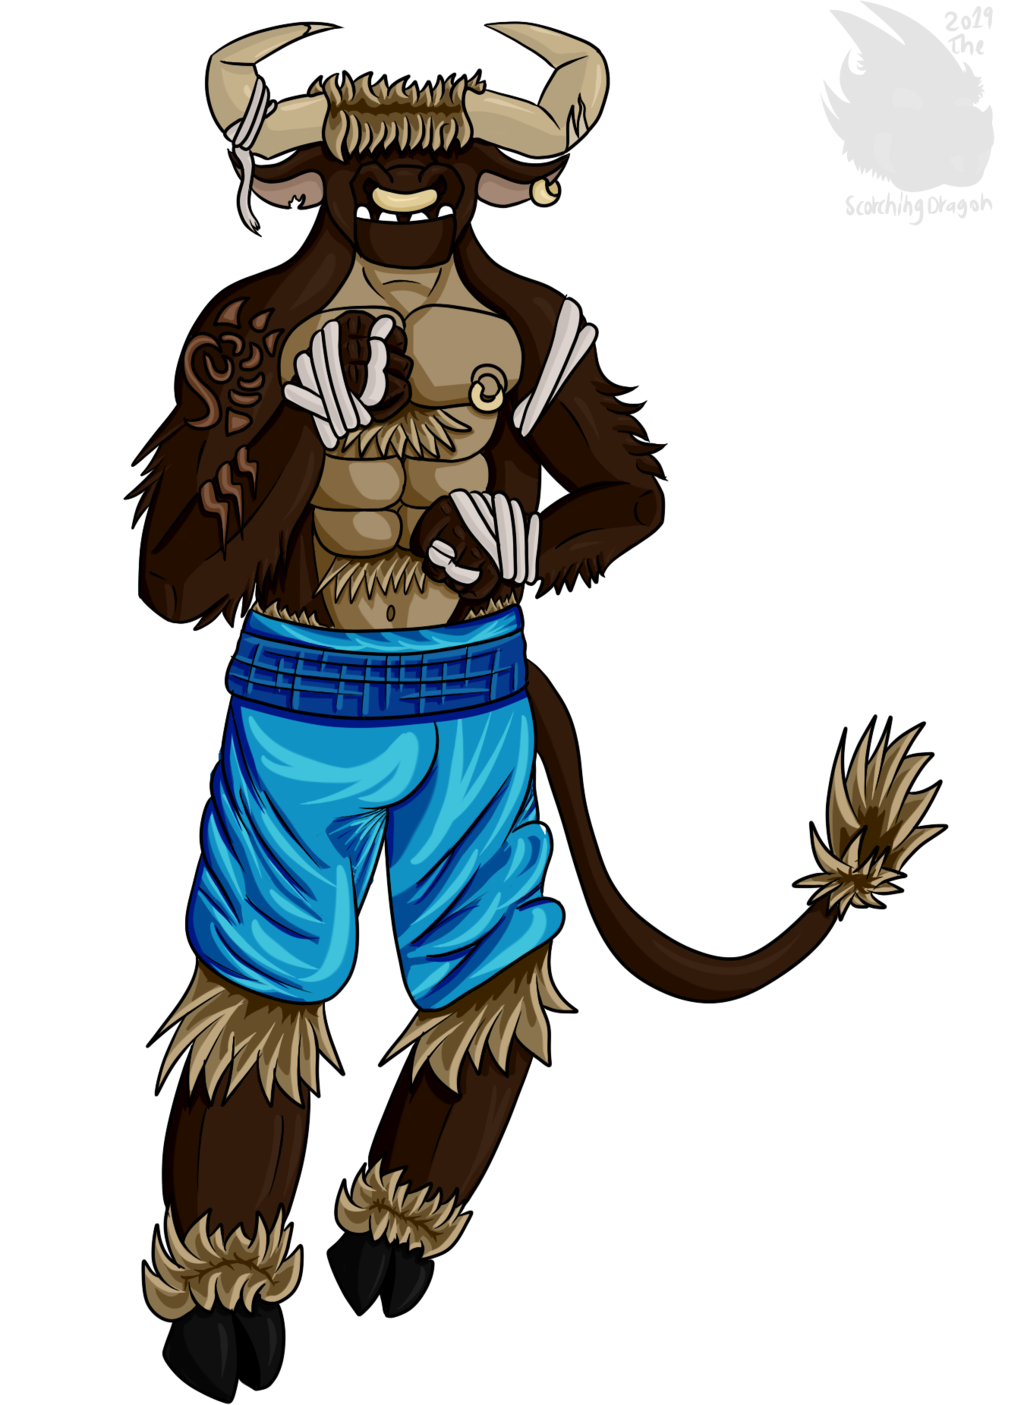 Bull Boxer (Cell shaded version)